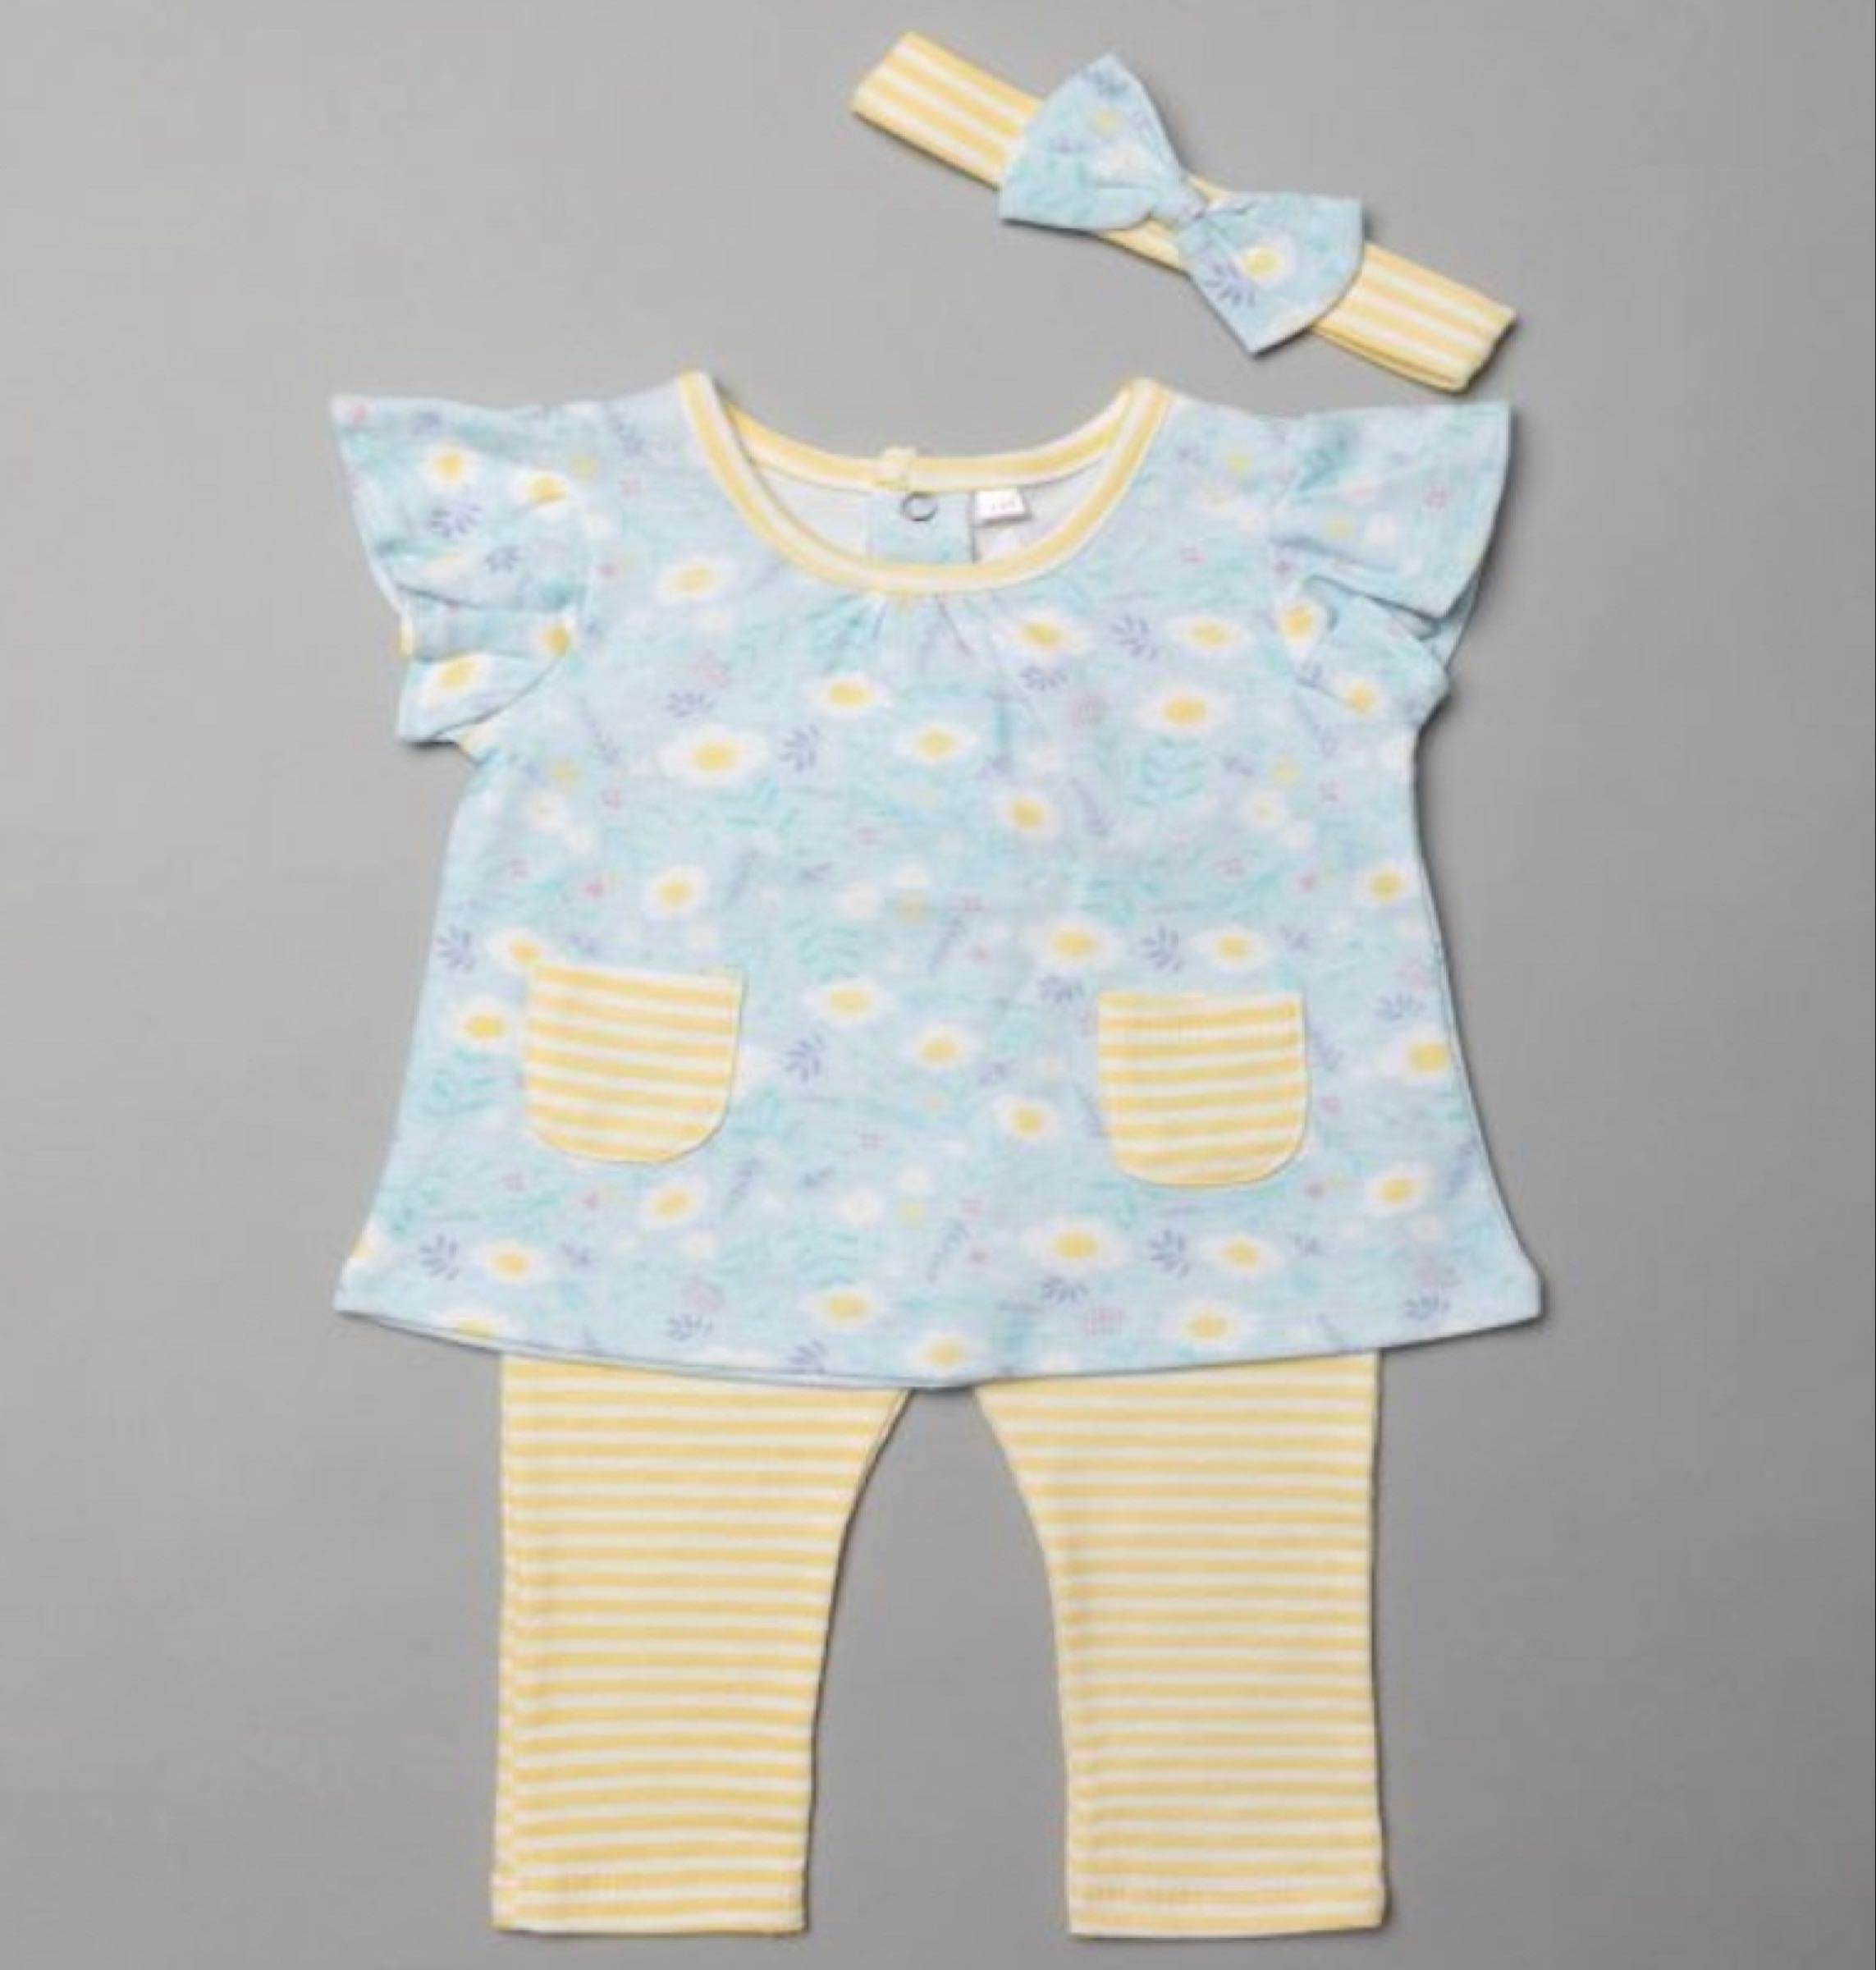 Spring Daisy leggings and top set